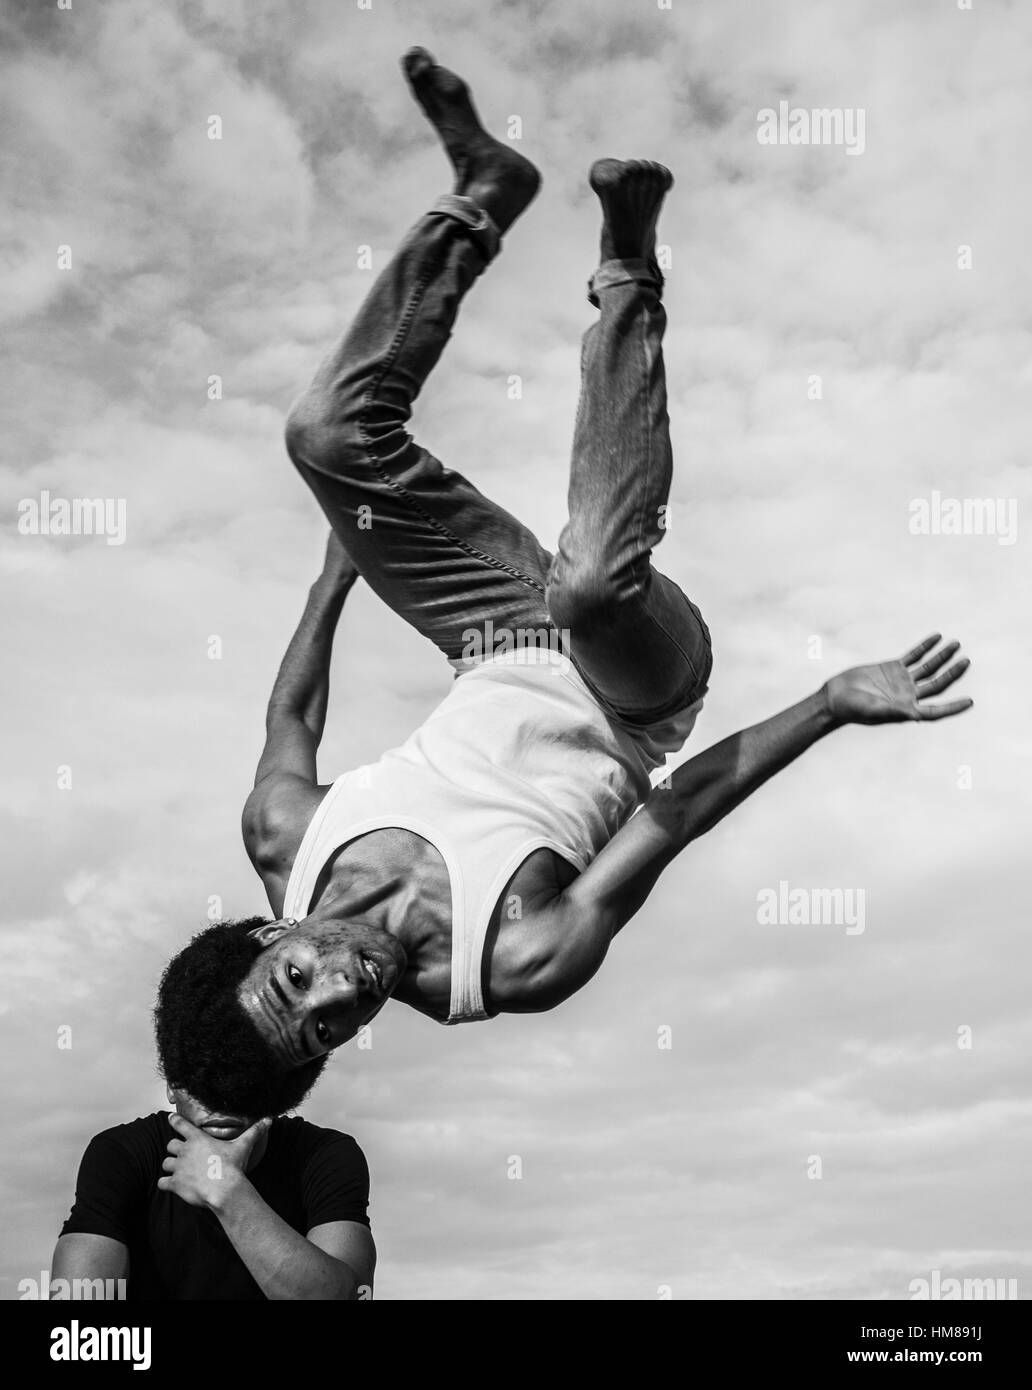 Young Adult Man Flipping Upside Down in Air - Stock Image